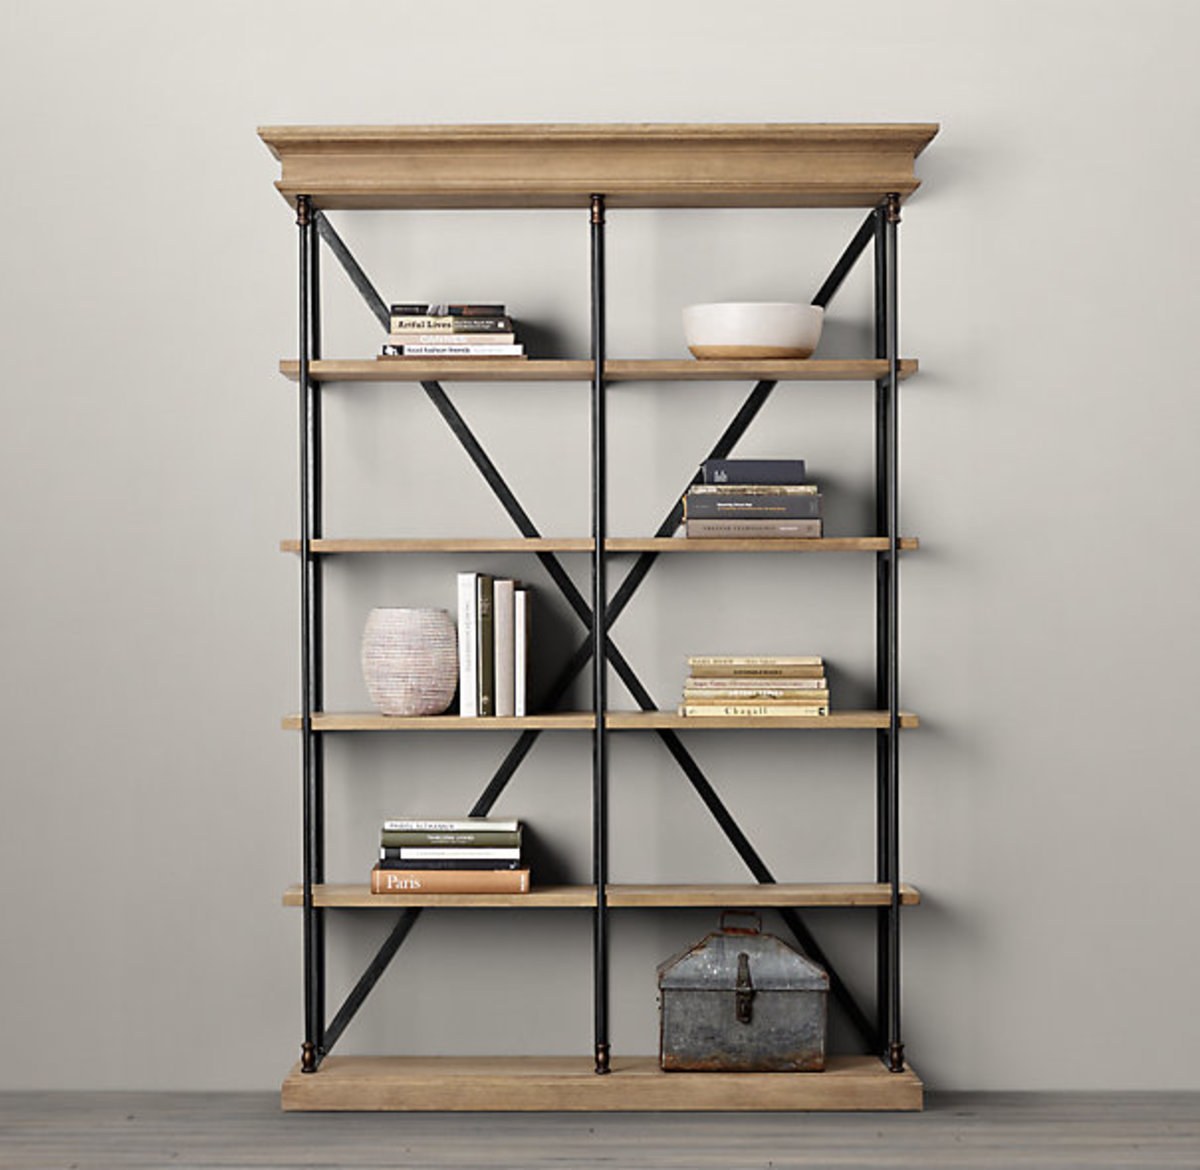 RH Parisian Cornice bookshelf look alike